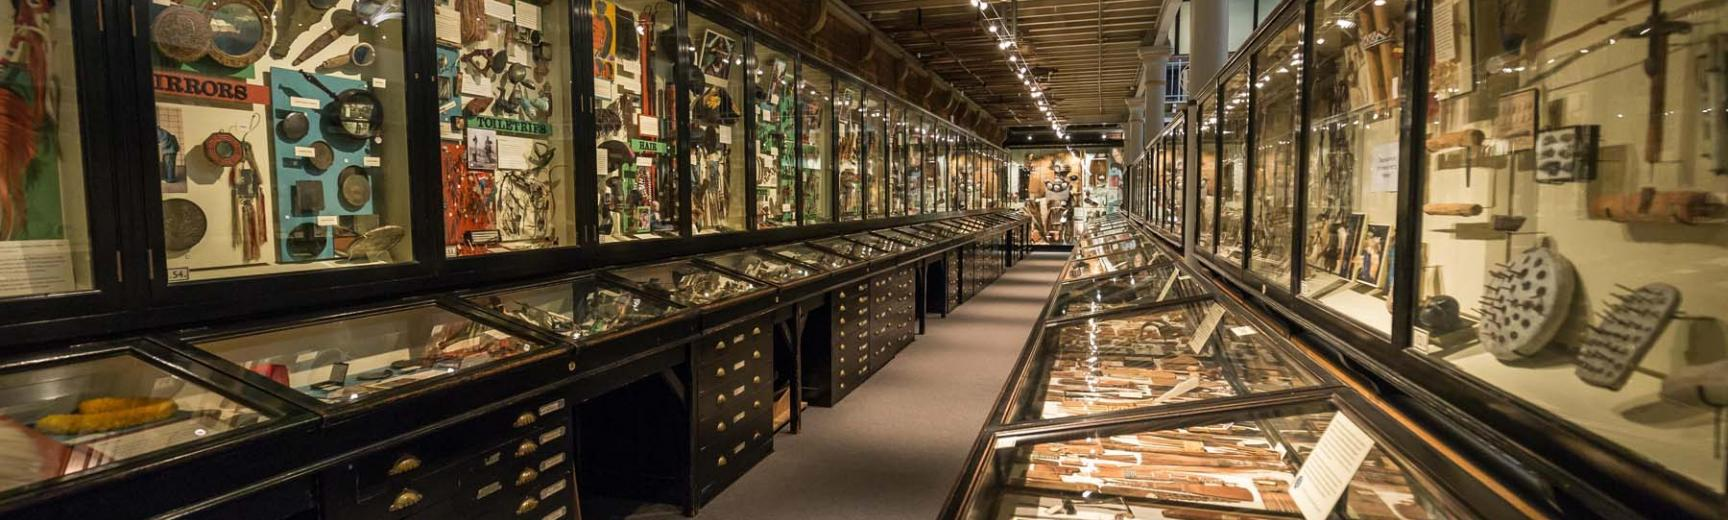 pitt rivers by ian wallman 9793